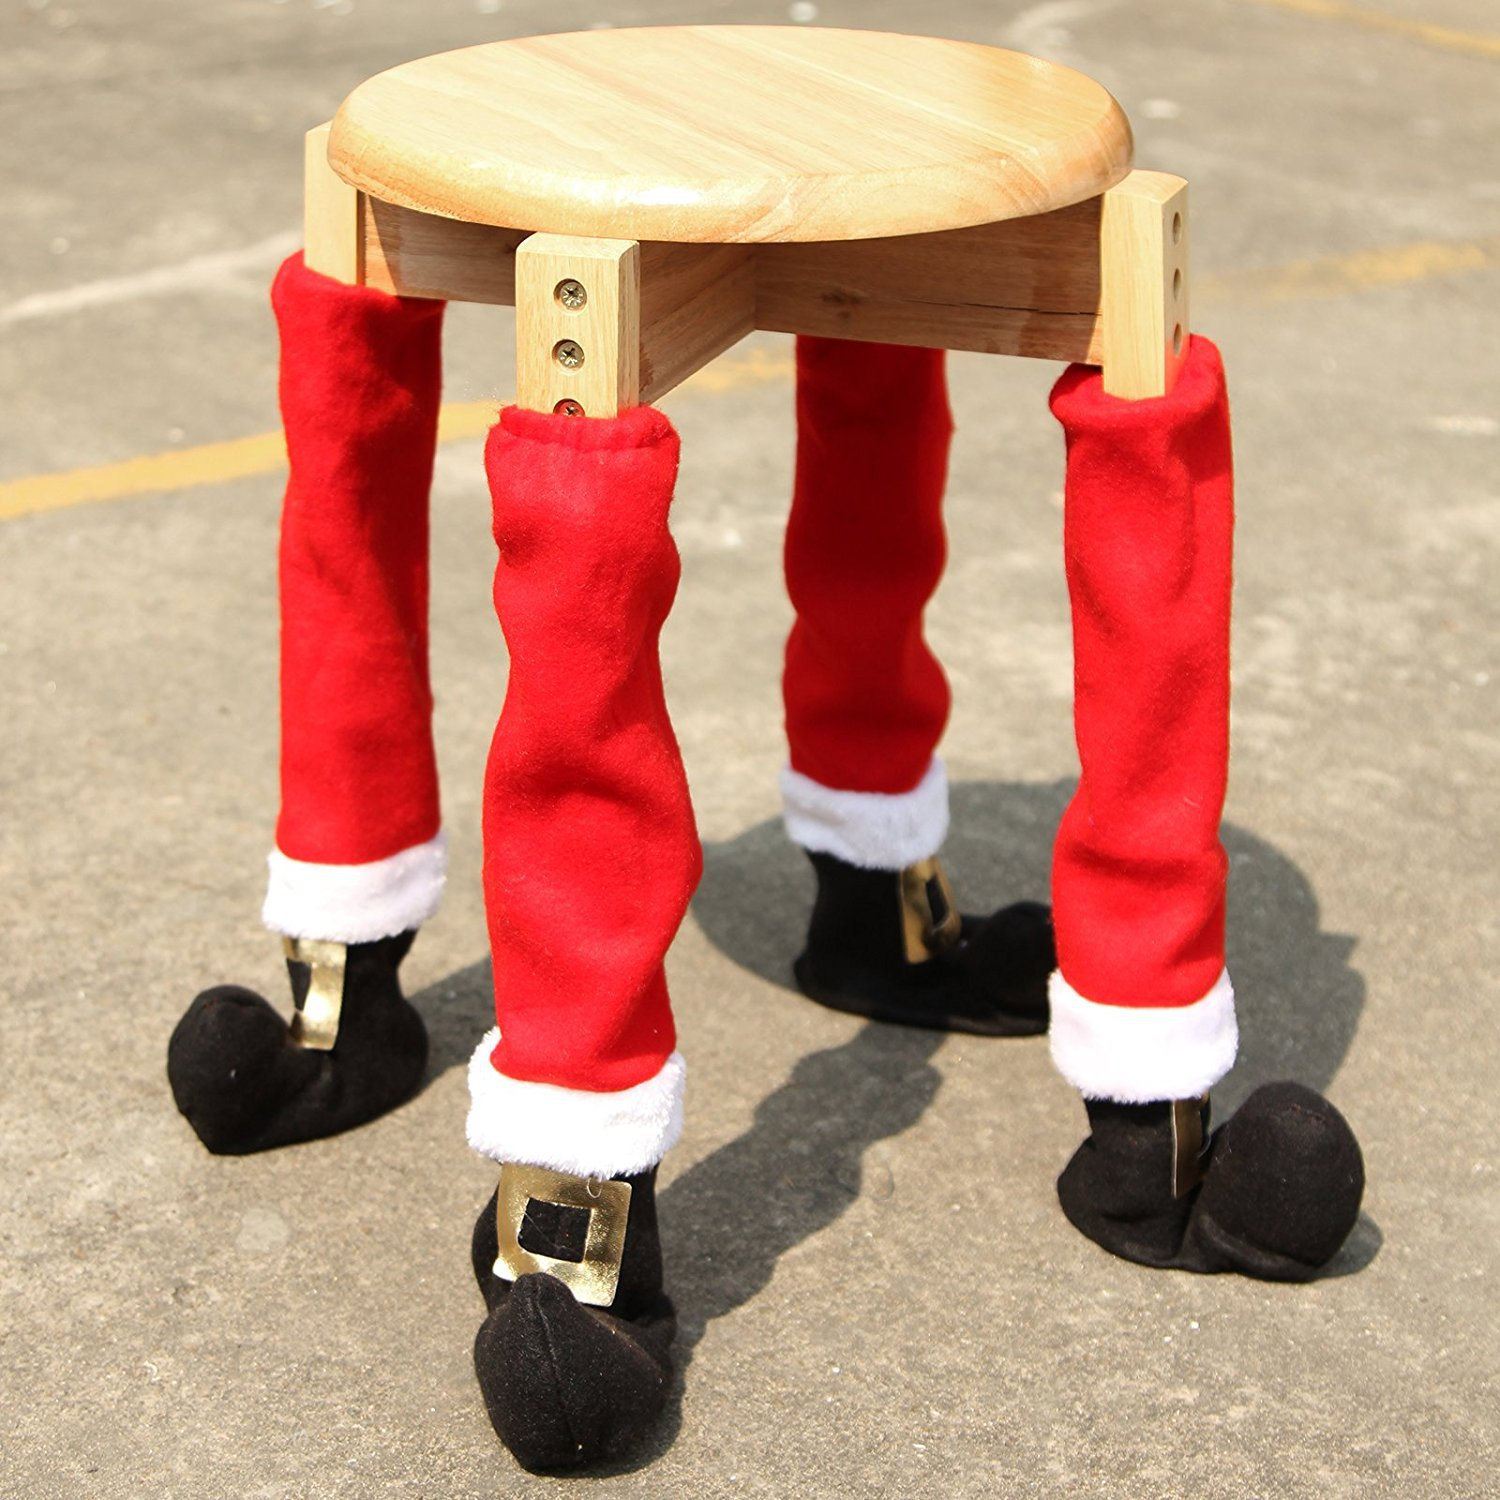 4Pcs Christmas Red Table Chair Legs Feet Sock Sleeve Cover Floor Protector Tables Leg Covers Party Home Decorations